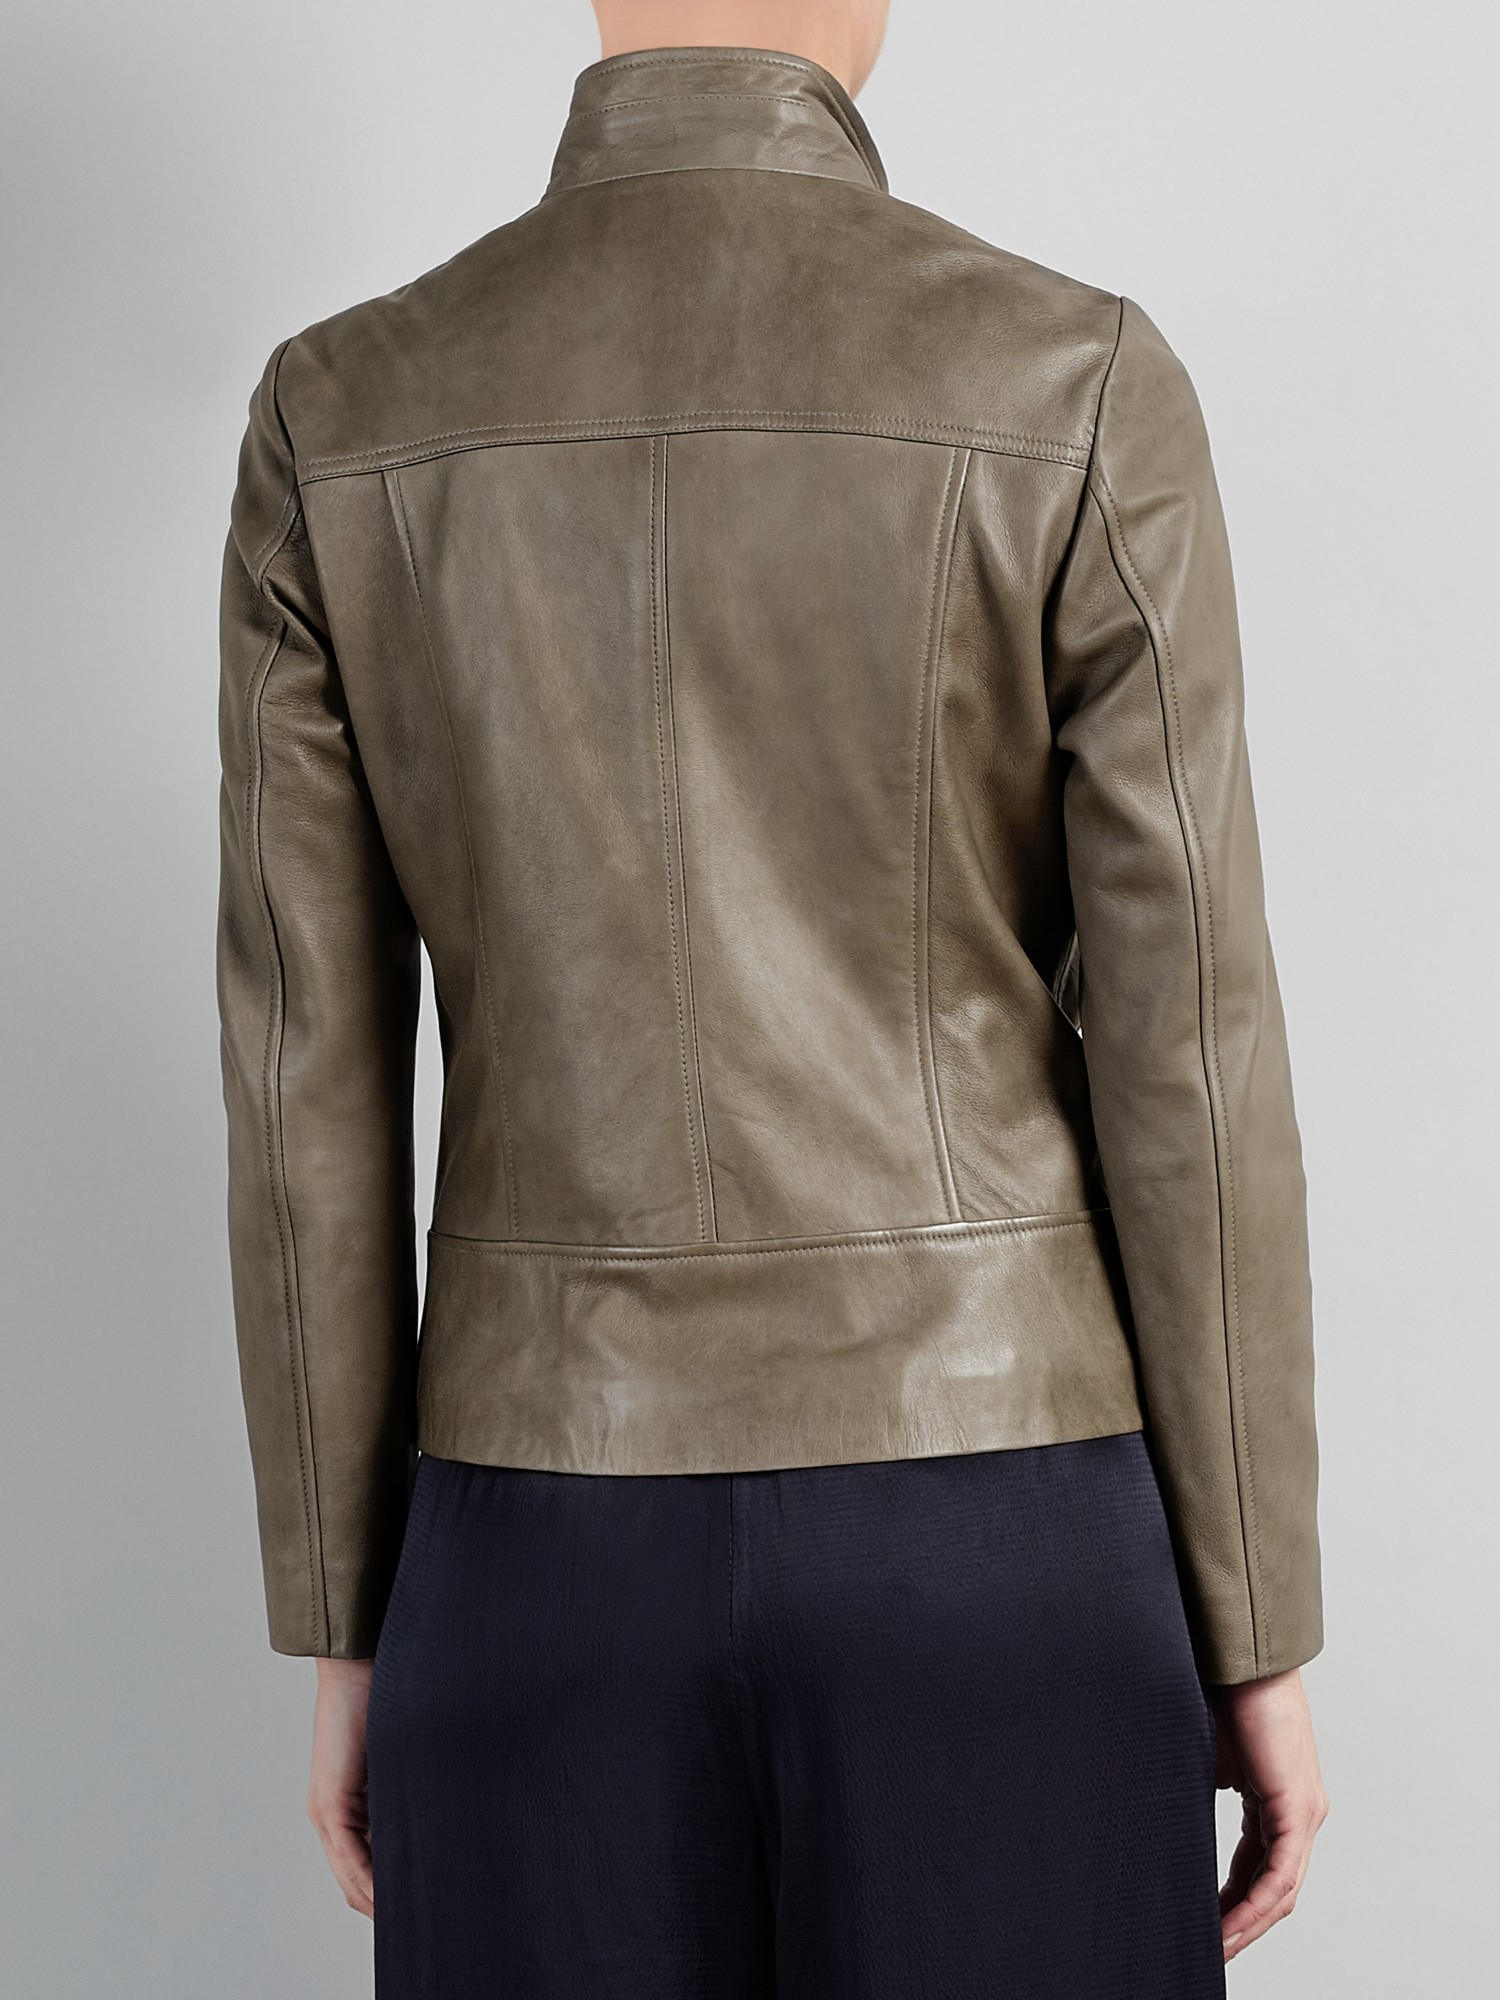 de316f81add8a6 Bruce By Bruce Oldfield - Multicolor Leather Jacket - Lyst